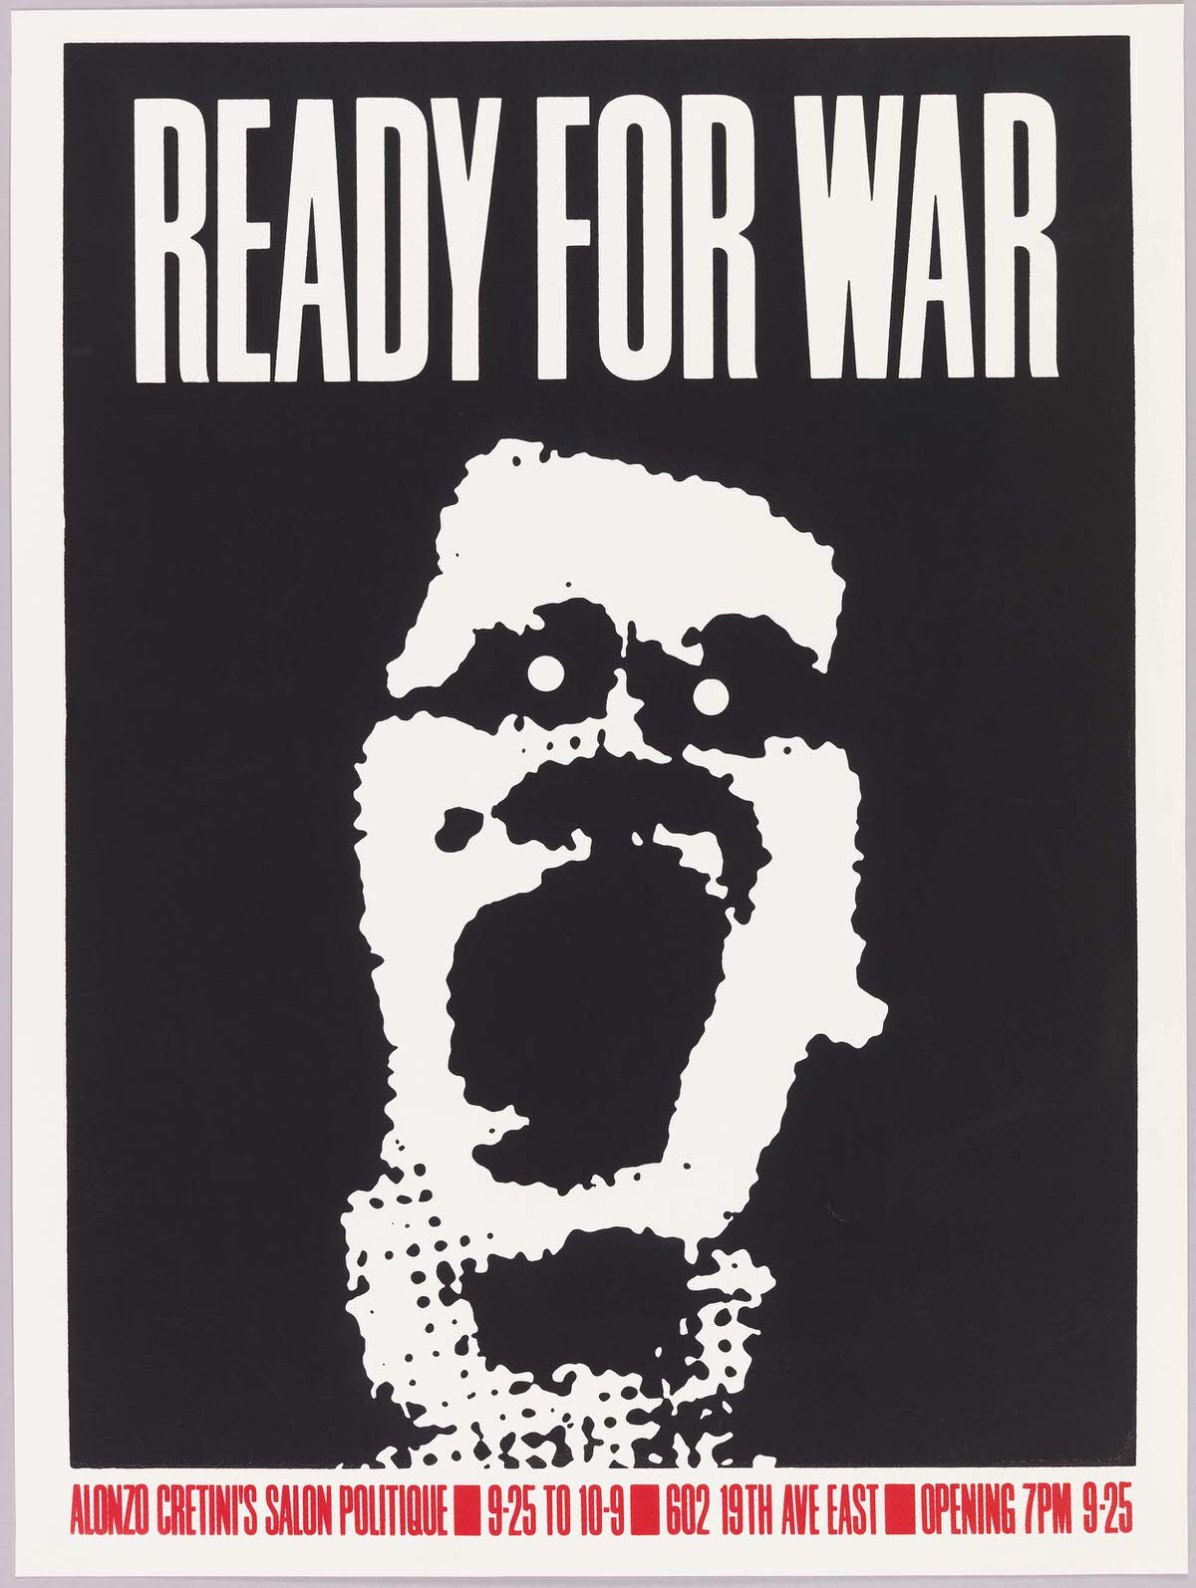 Art Chantry (American, b. 1954). Ready for War, 1982. Screenprint. 60.9 ◊ 45.5 cm (24 ◊ 17 15/16 in.). Gift of Steven Heller and Karrie Jacobs, 1993-53-27. Foto: Matt Flynn.